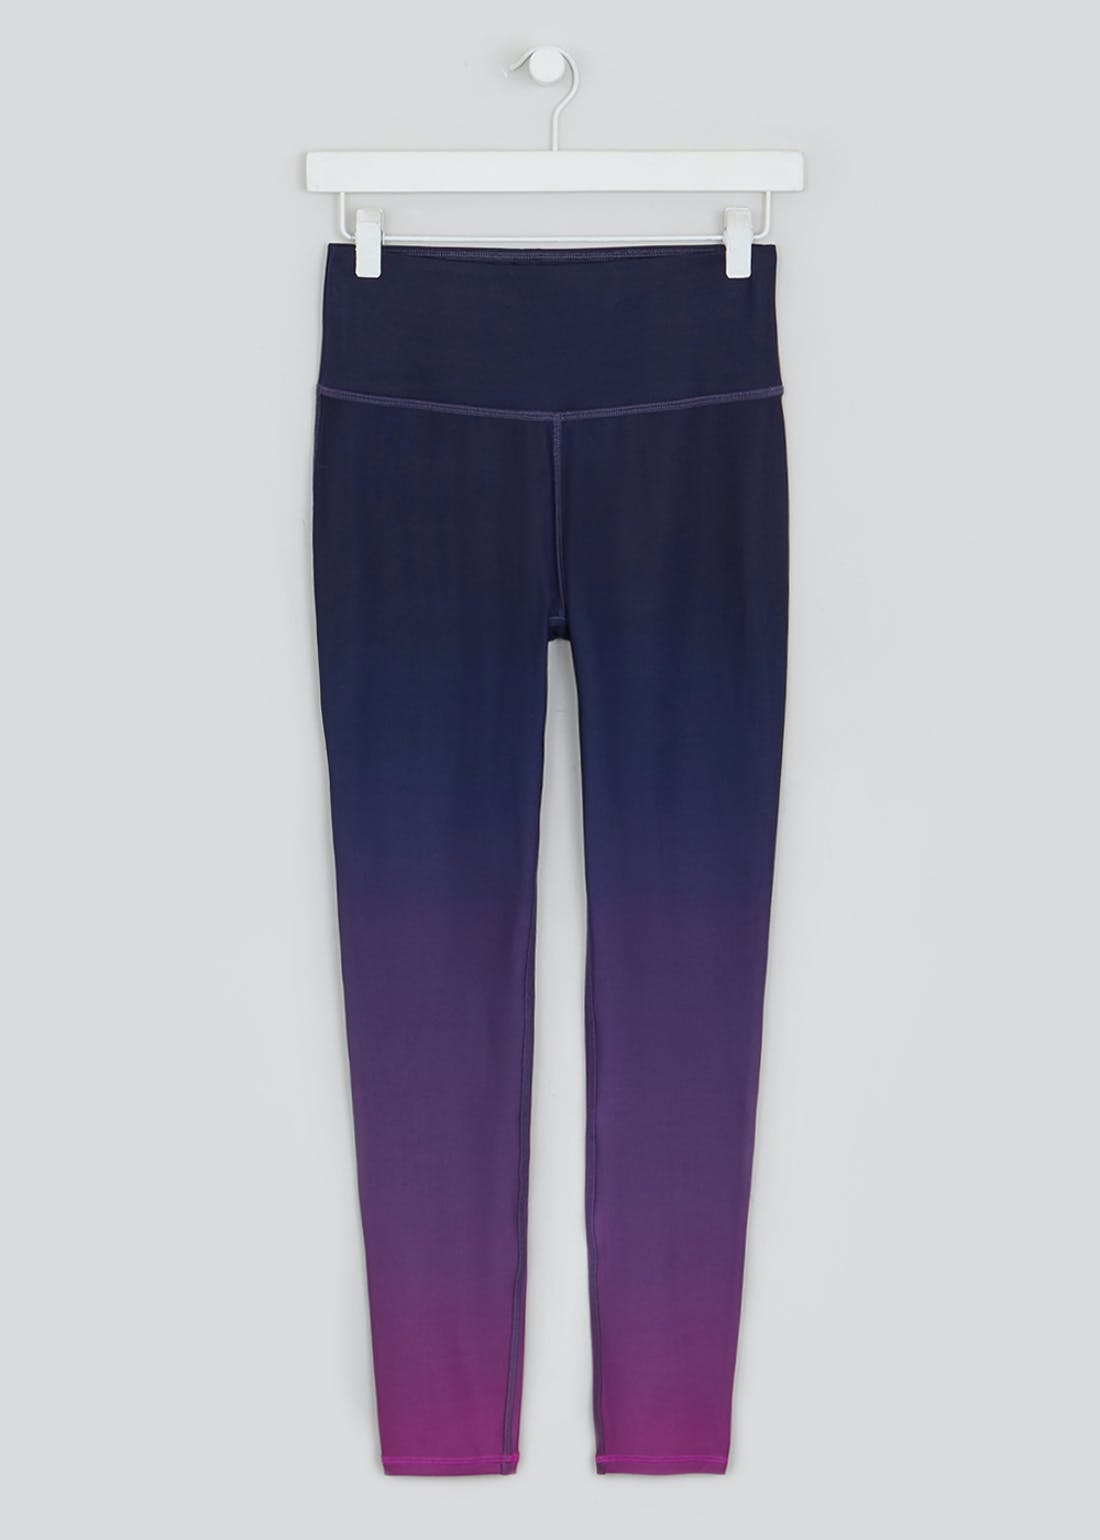 Souluxe Purple Ombre Gym Leggings